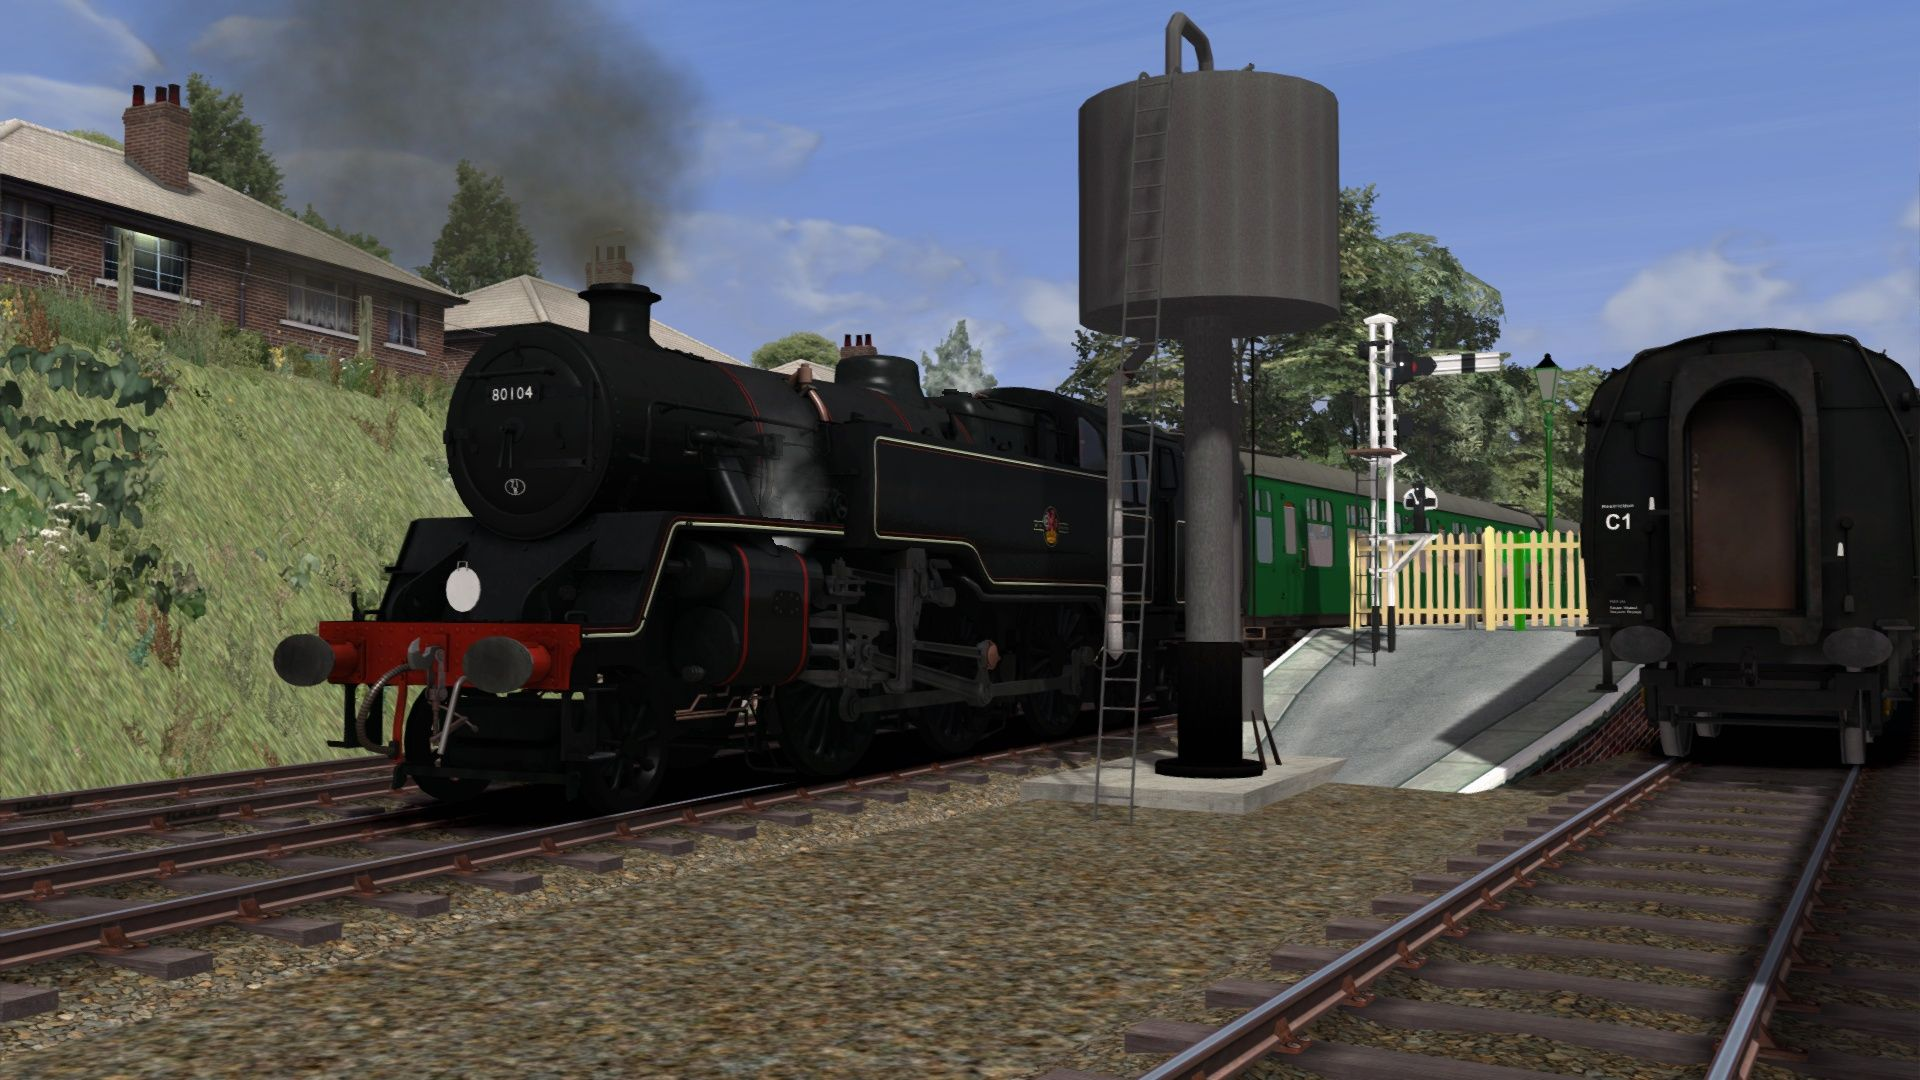 Screenshot_Swanage Railway_50.61001--1.96207_16-01-12